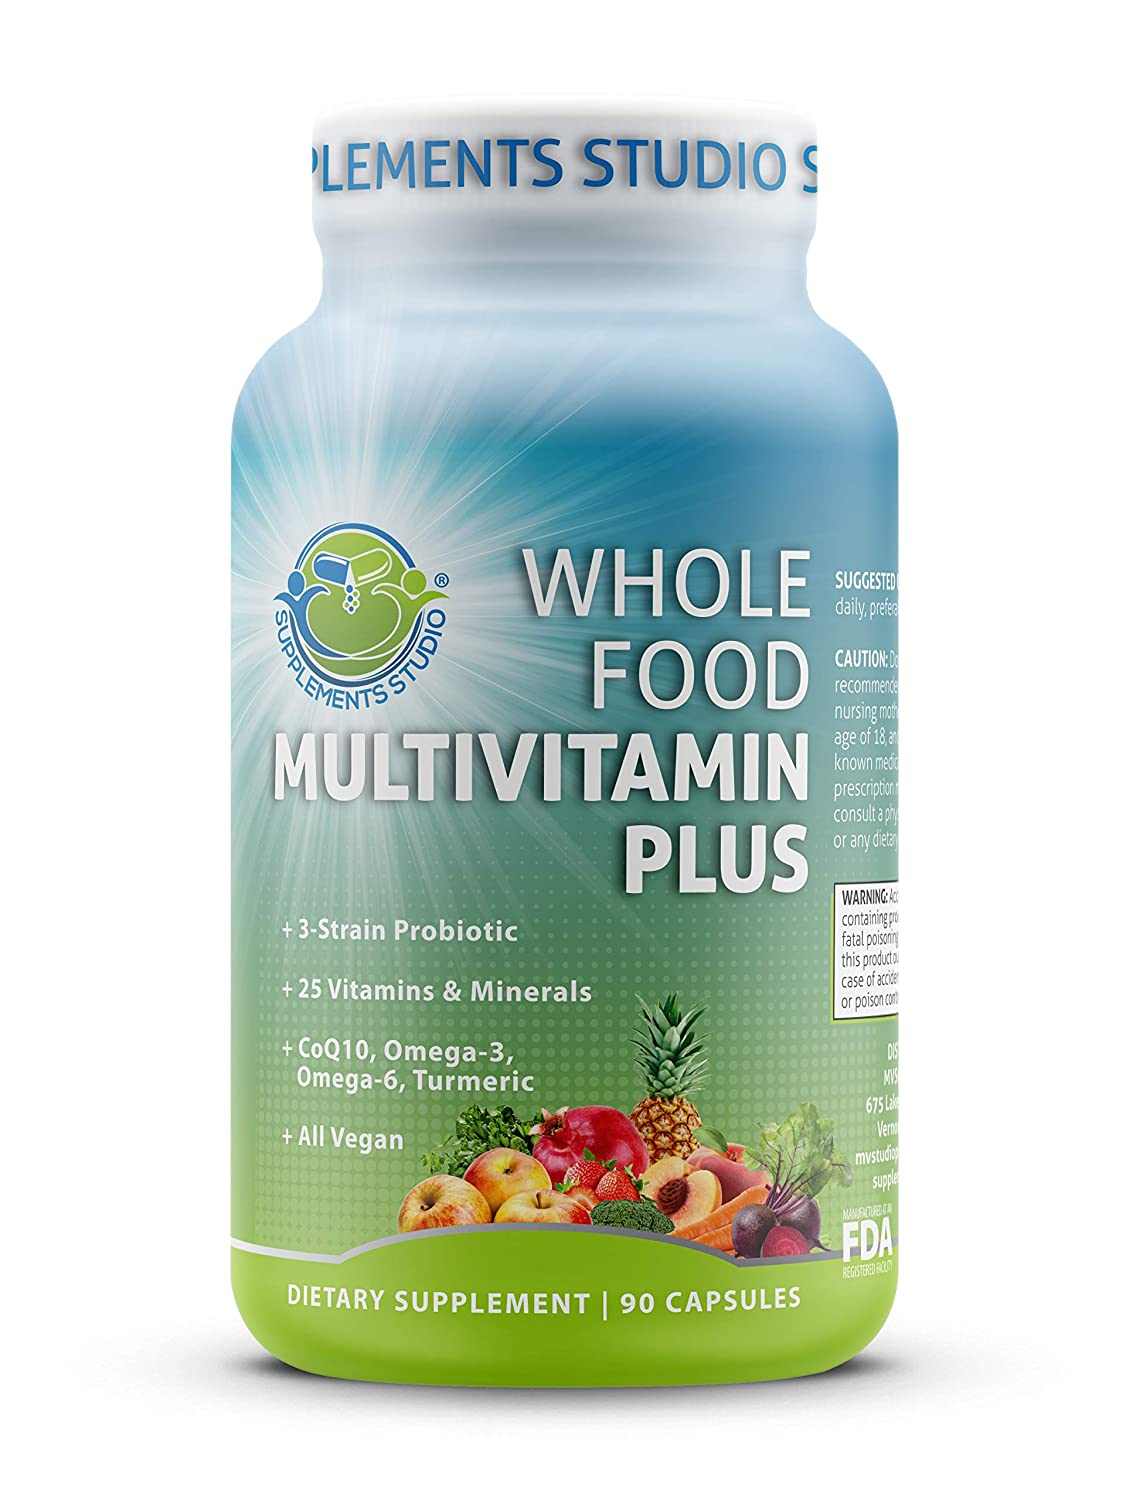 Whole Food Multivitamin Plus - Vegan - Daily Multivitamin for Men and Women  with Organic Fruits and Vegetables, B-Complex, Probiotics, Enzymes, CoQ10,  ...